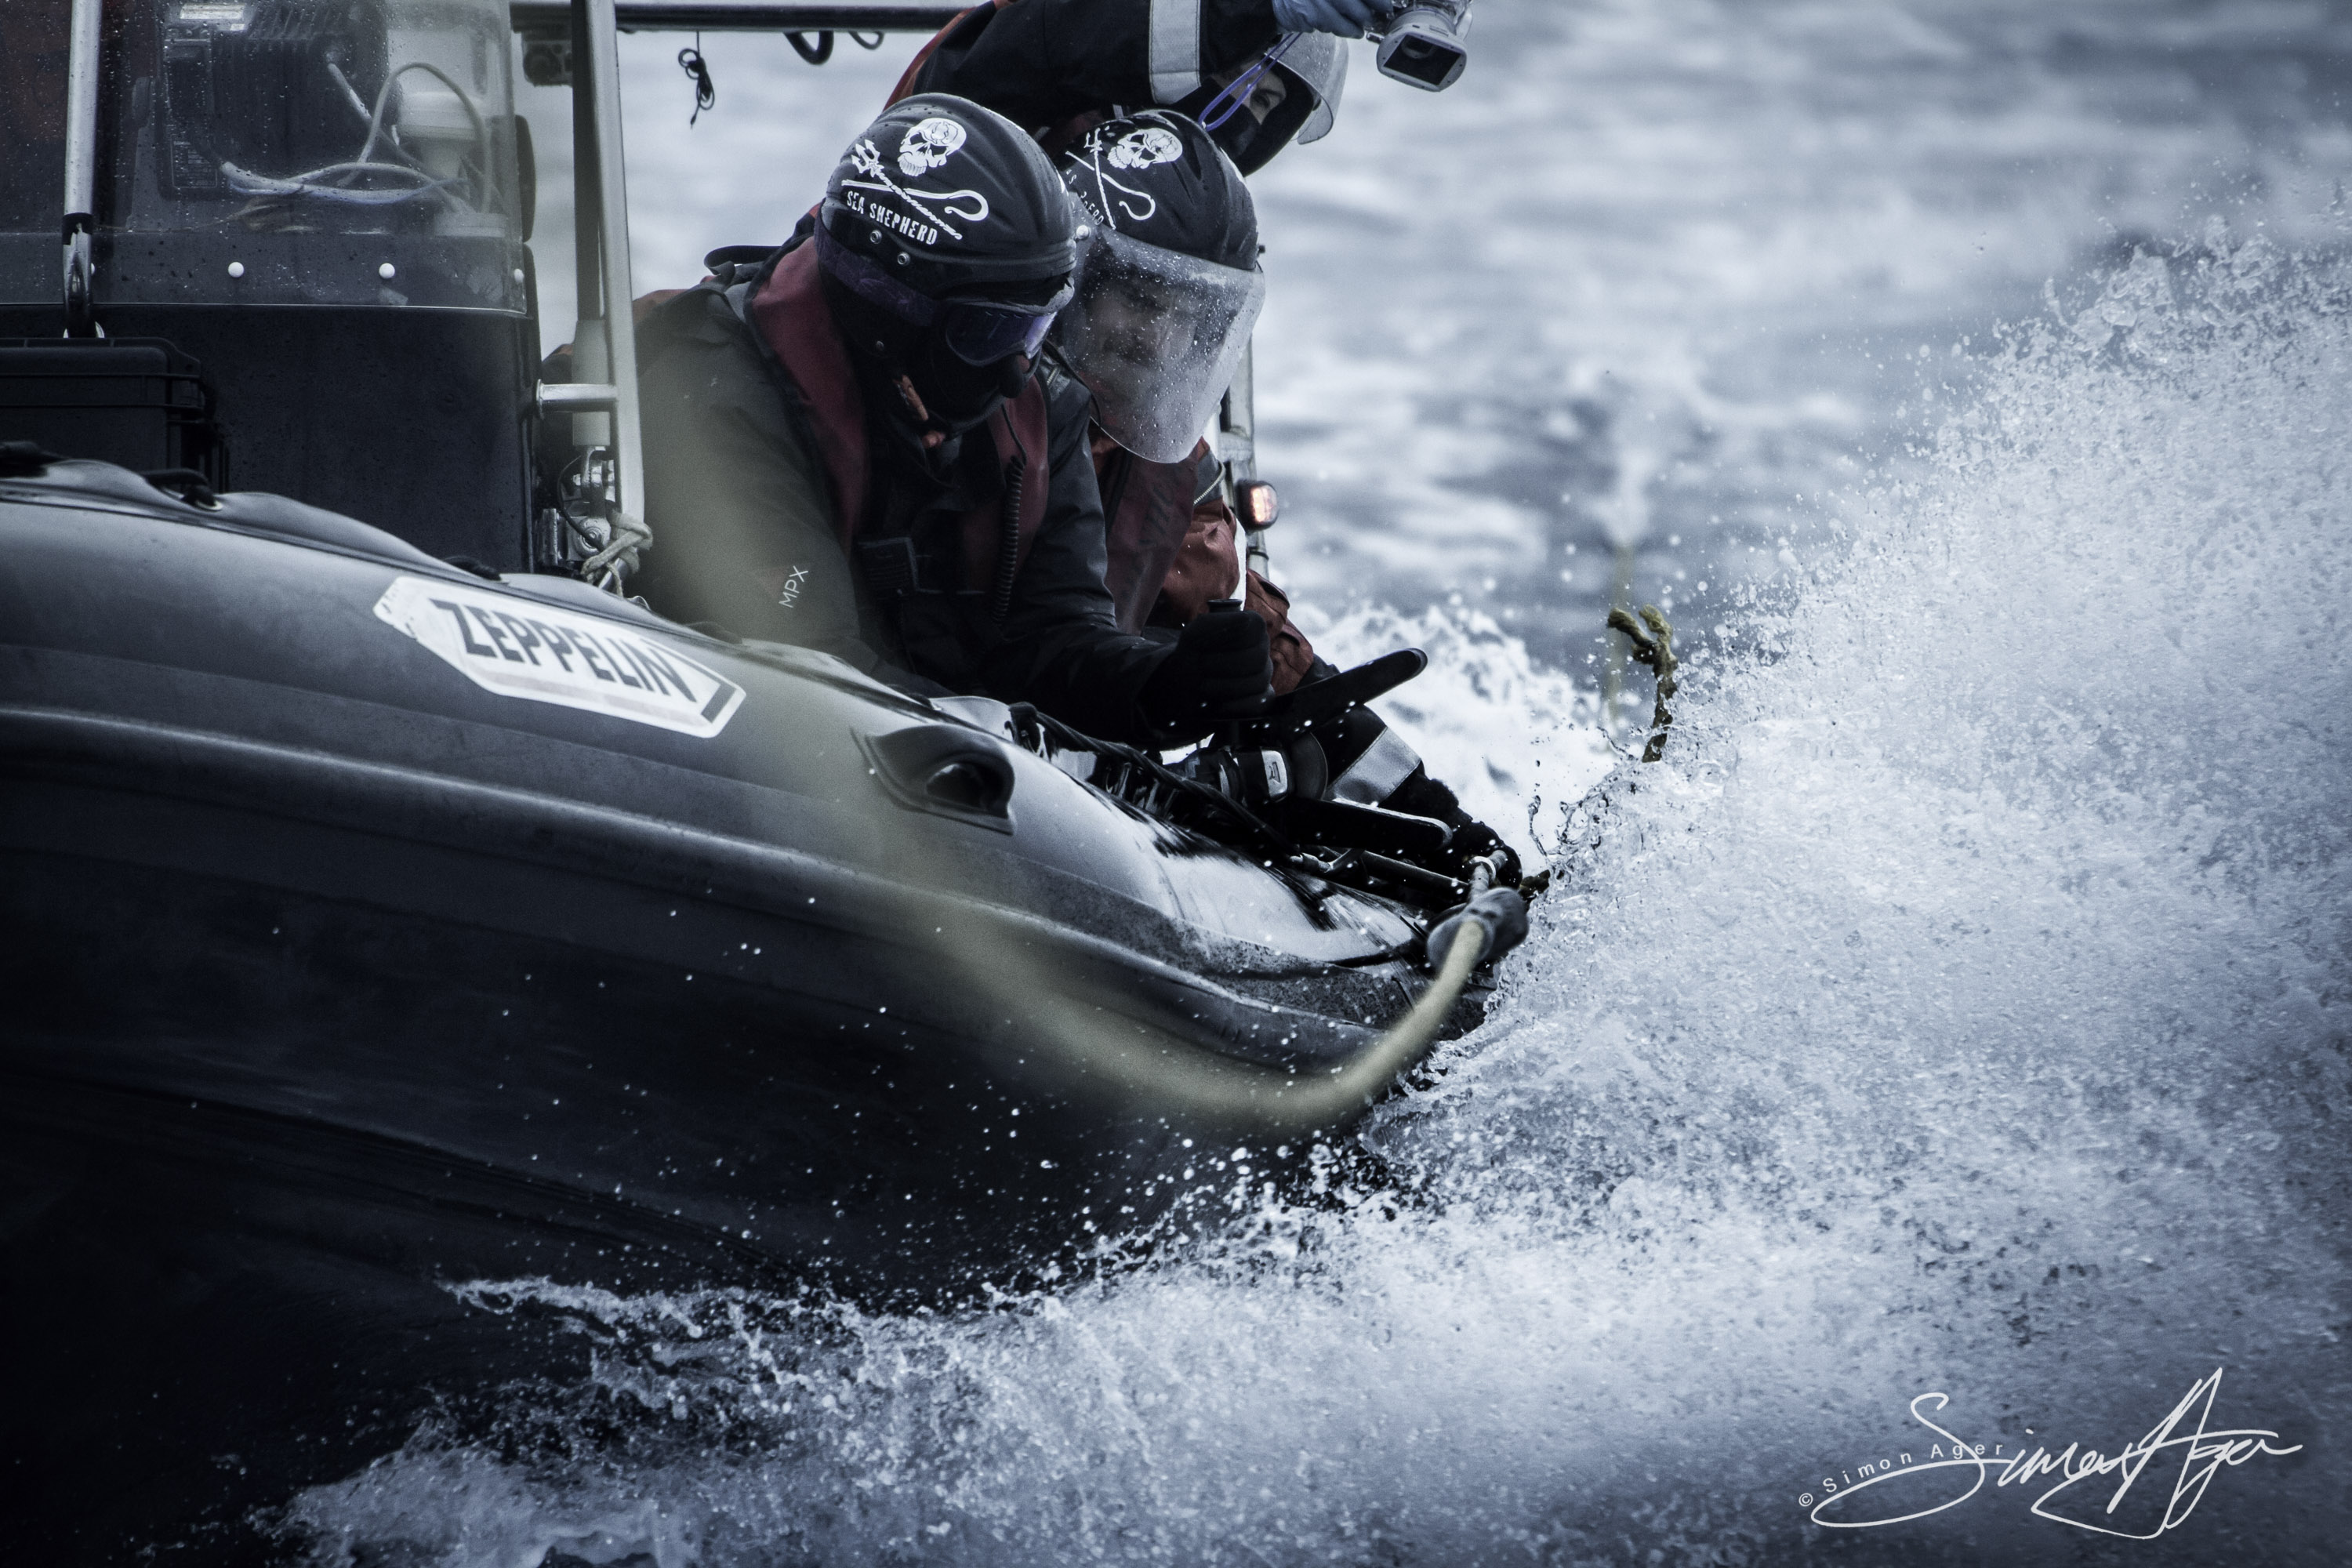 140215-SA-BB-small-boat-Hunter-attempts-cutting-defensive-trailing-line-cable-using-grinder-IMG_6649